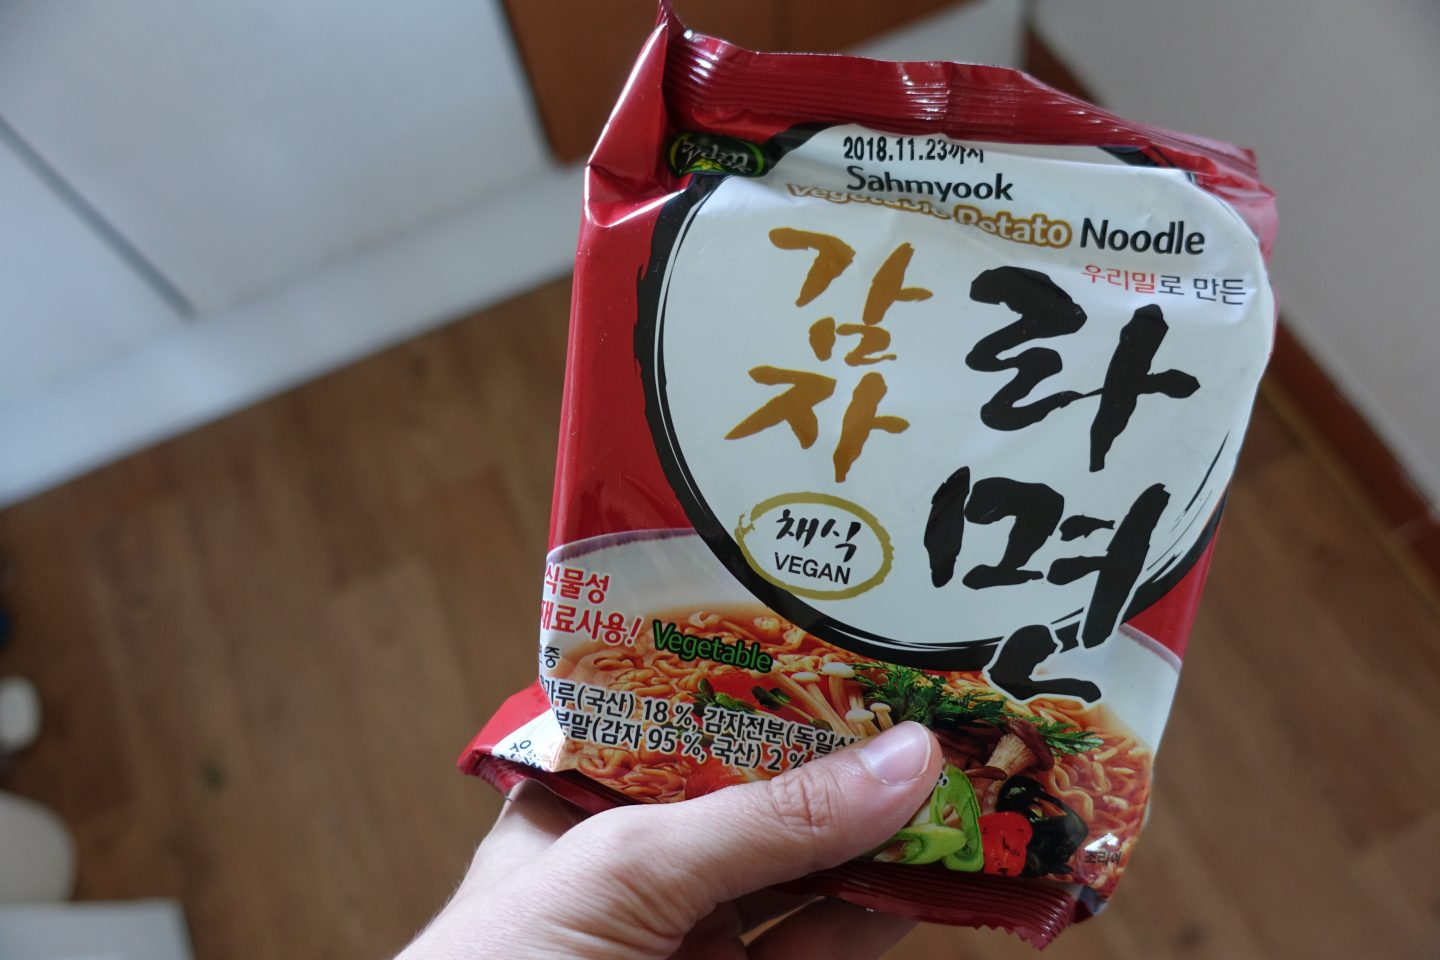 Fantastic vegan food in Seoul - Salm Yook Vegan ramen at Vegan Space